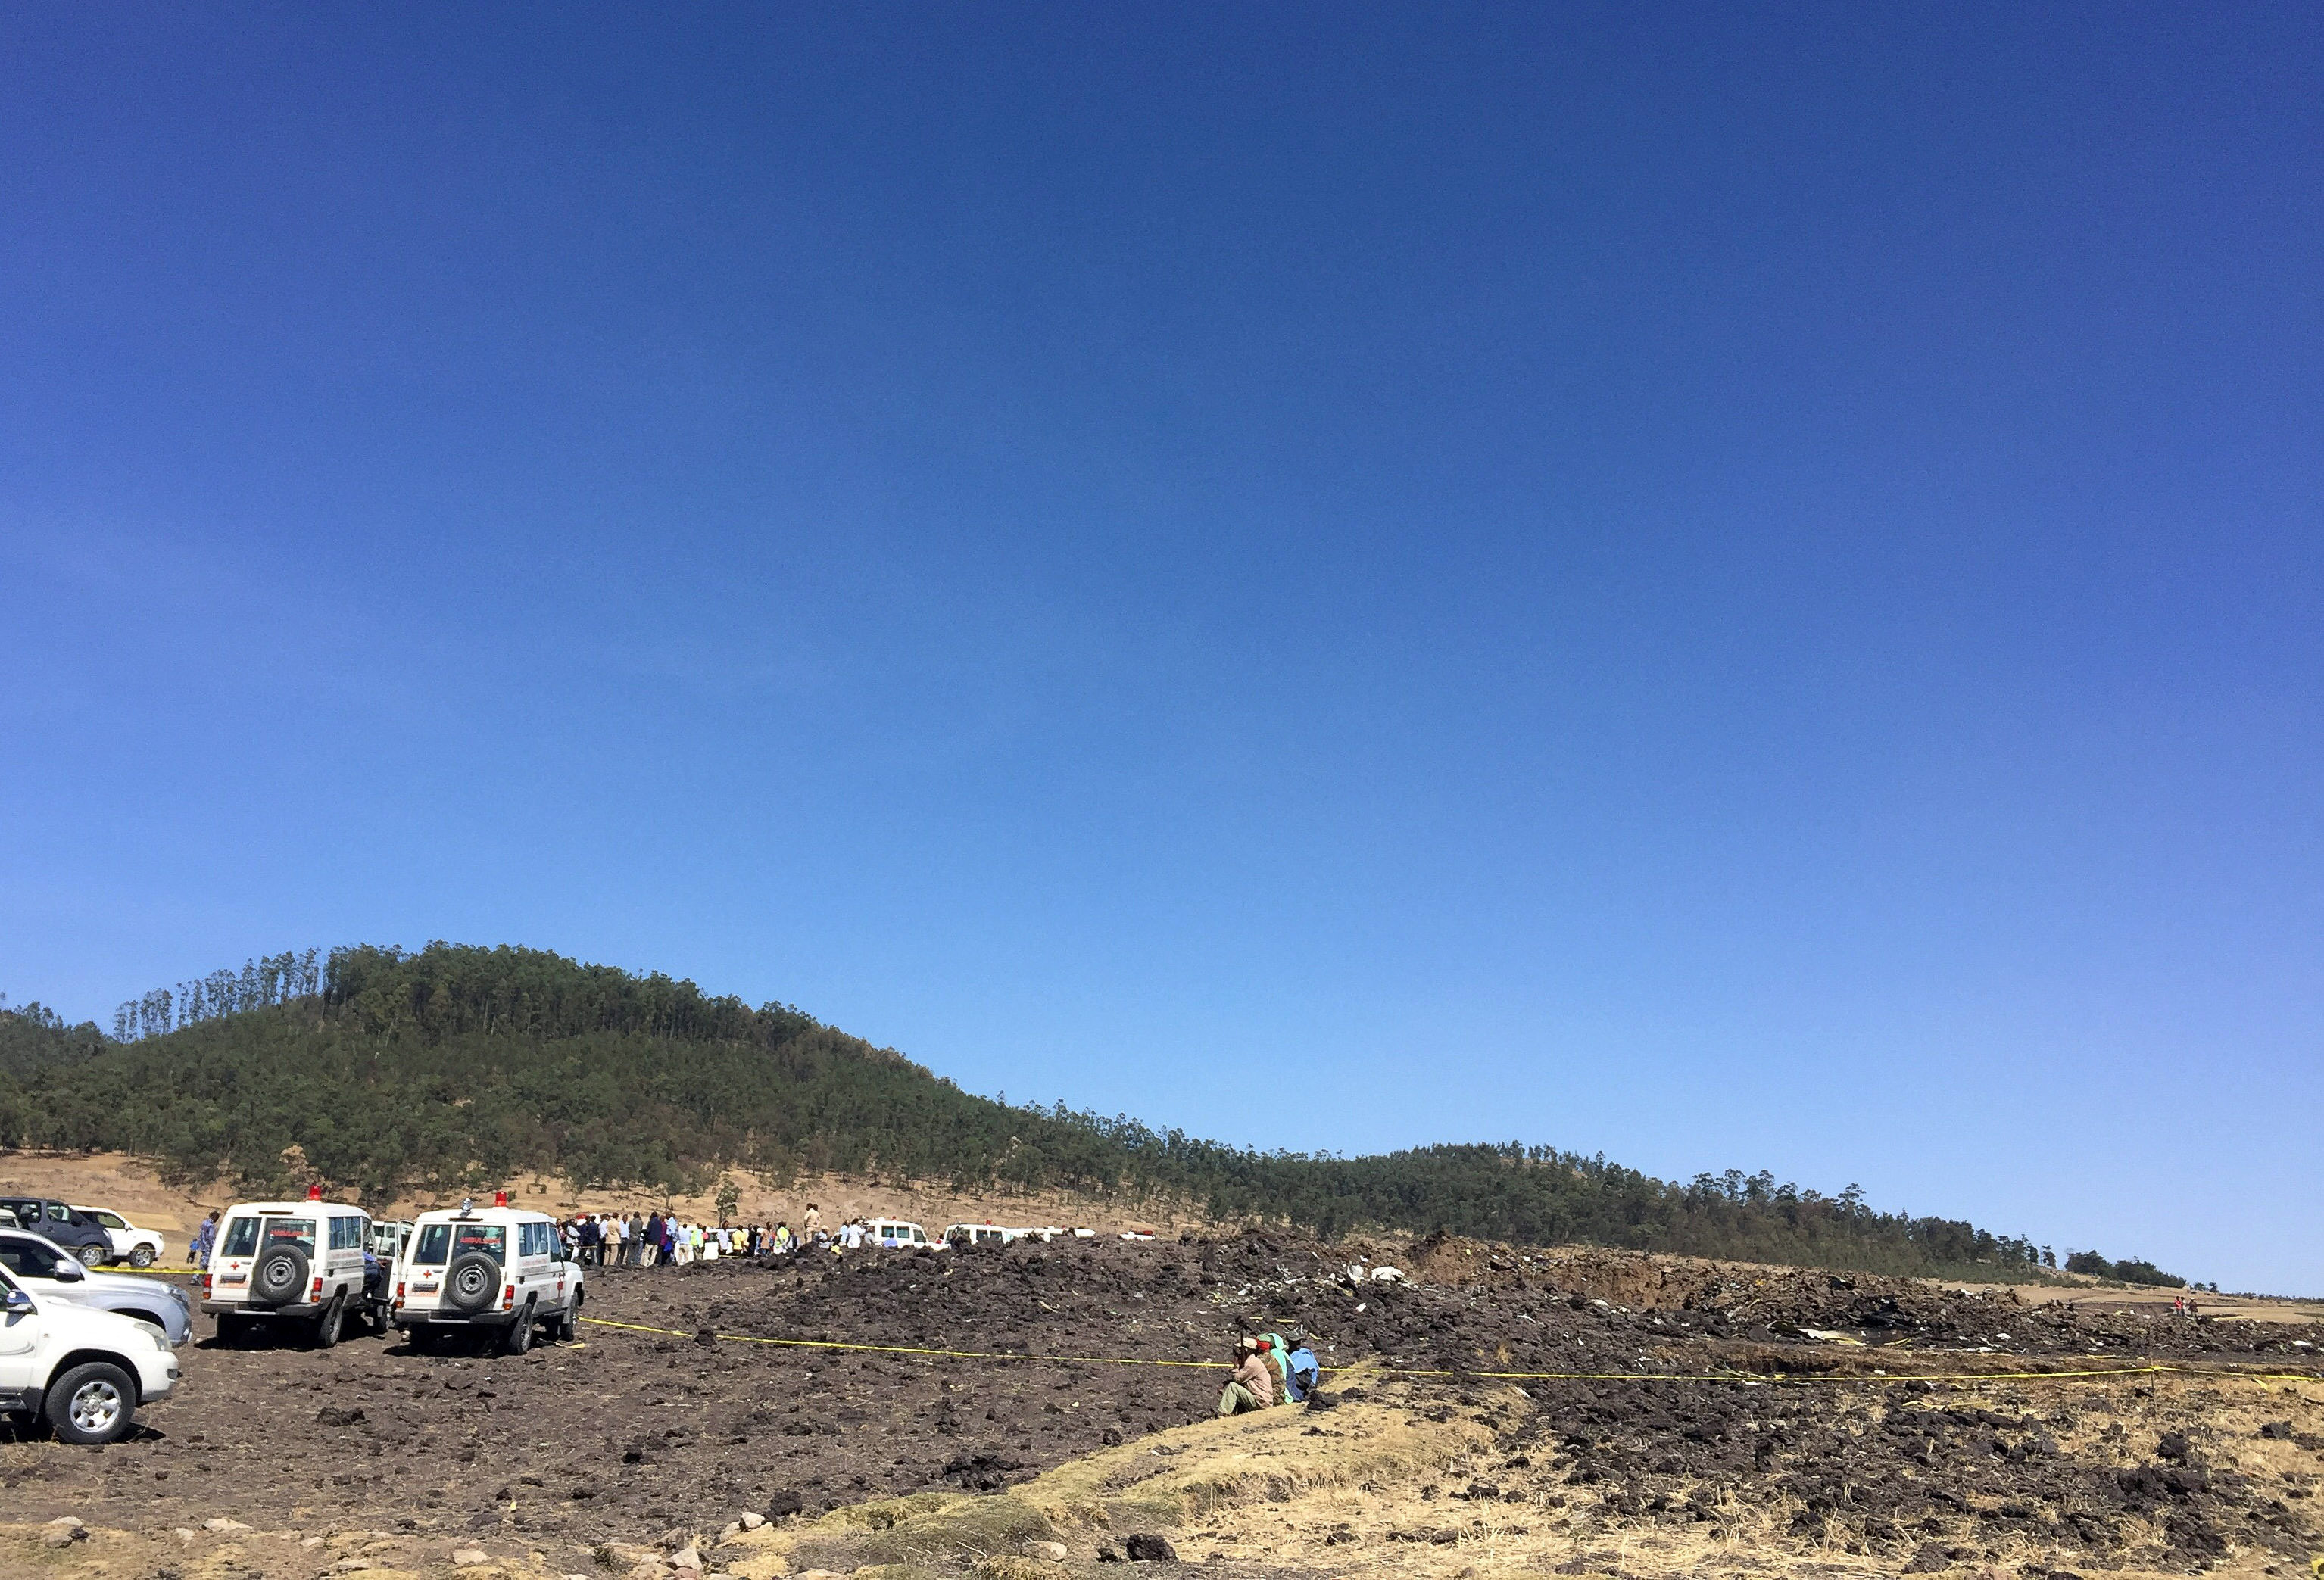 A general view shows the scene of the Ethiopian Airlines Flight ET 302 plane crash, near the town of Bishoftu, southeast of Addis Ababa, Ethiopia on March 10, 2019.